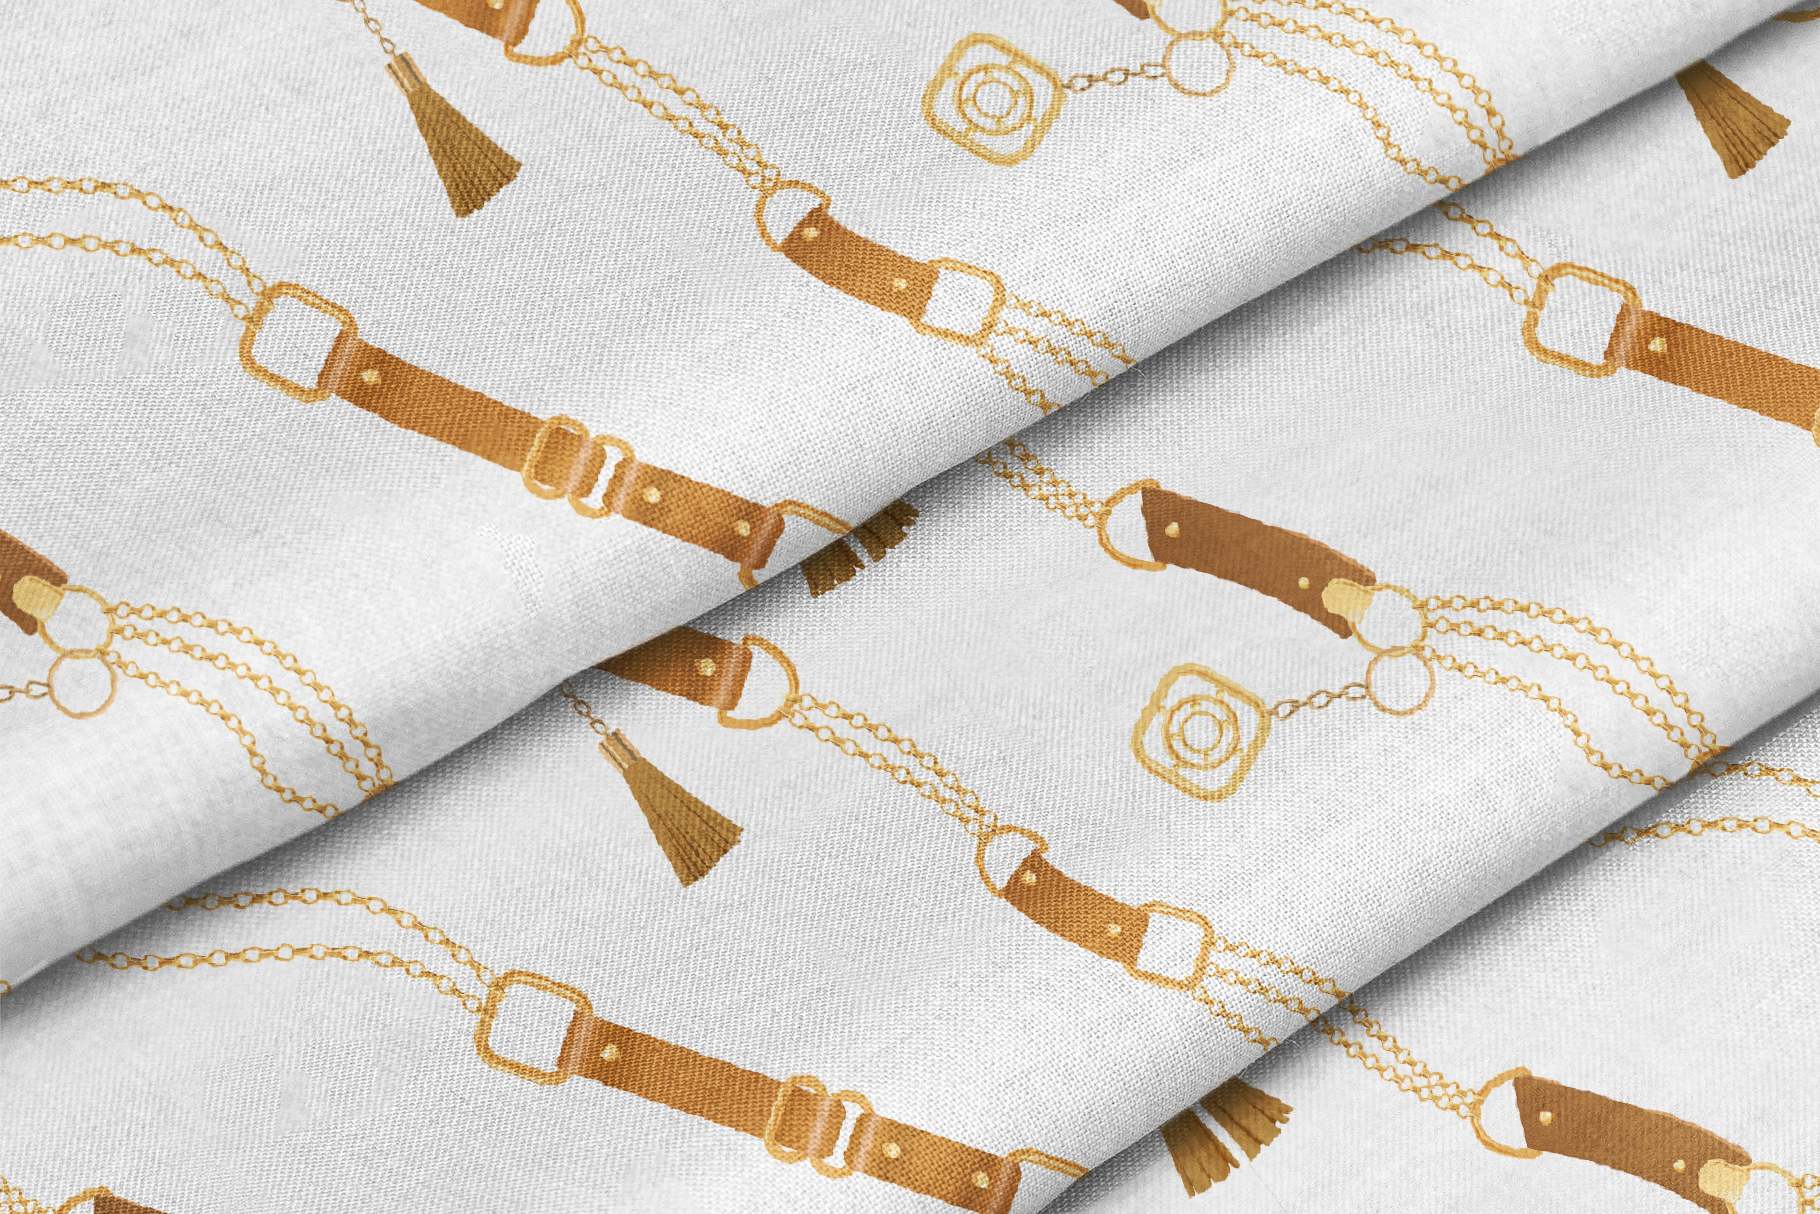 Chains and Belts Seamless Patterns. Set 2 example image 4